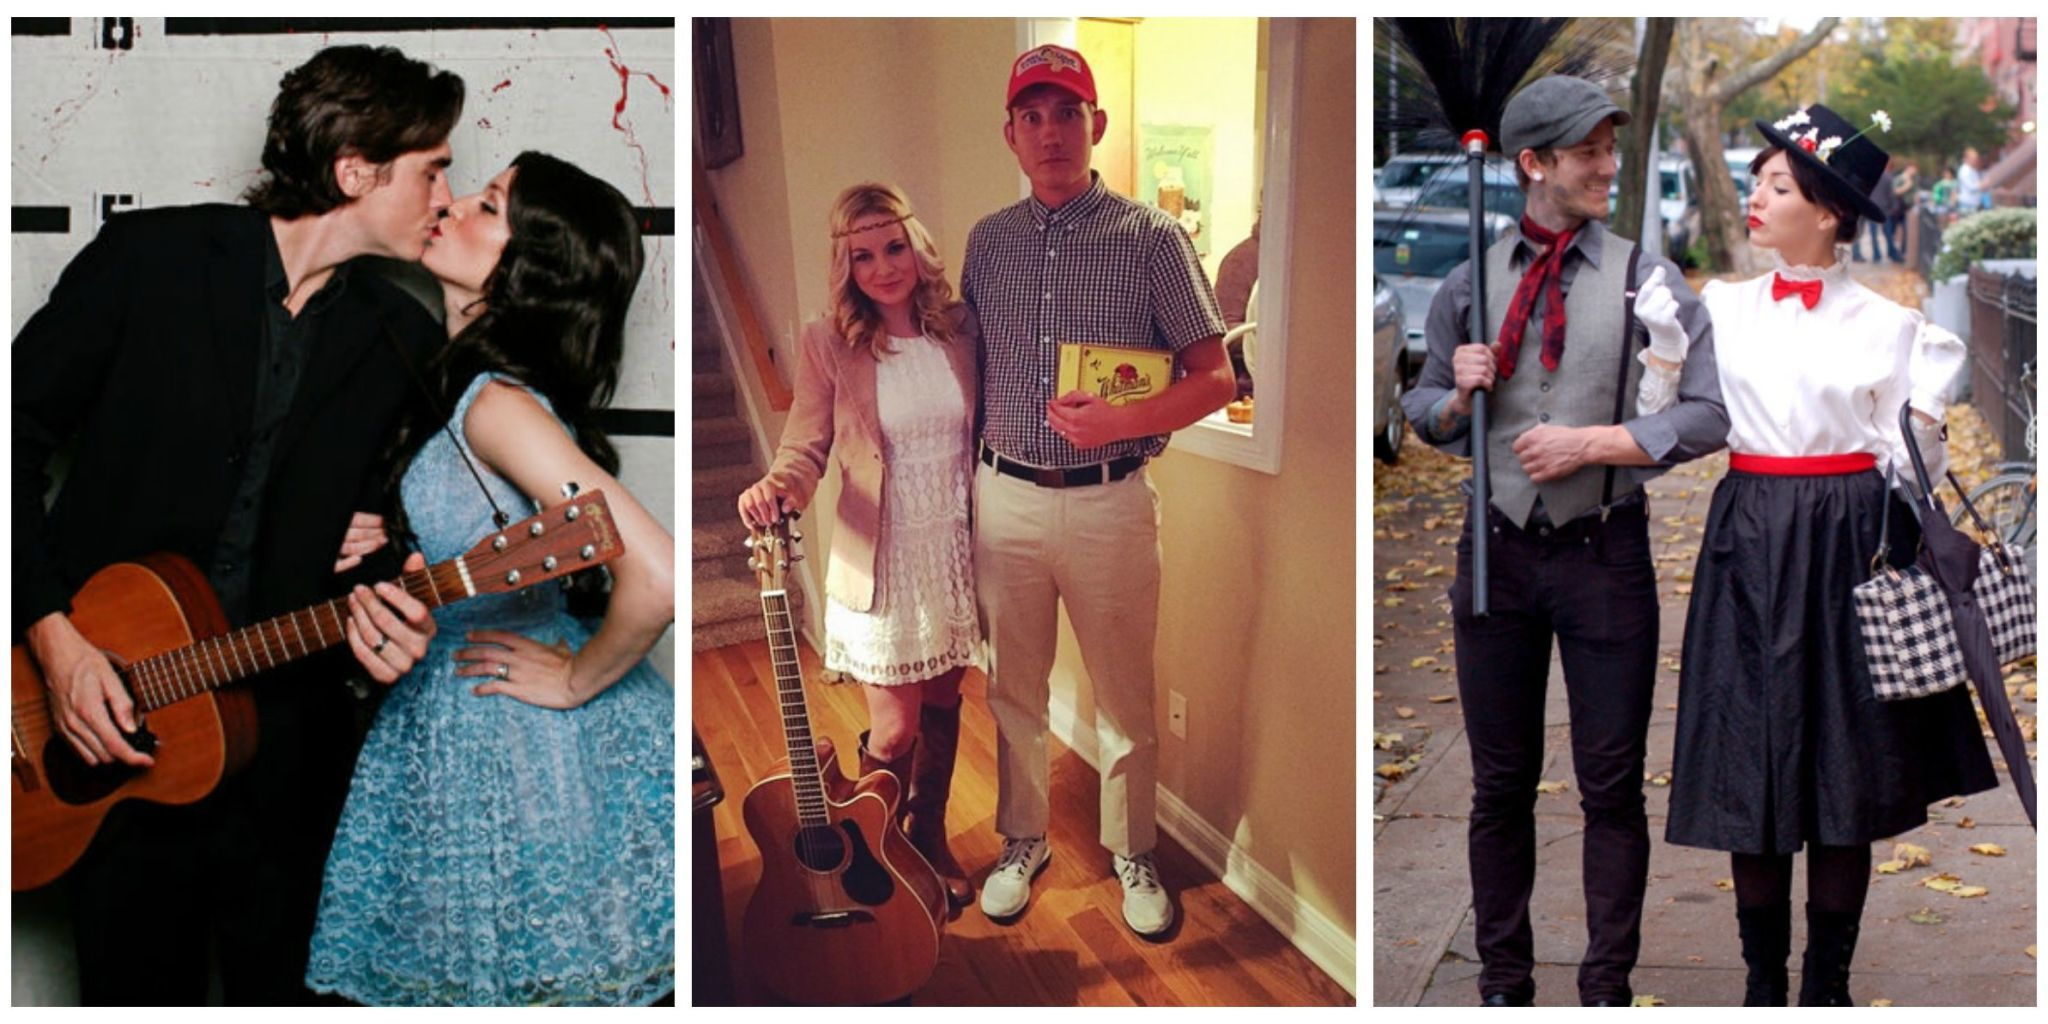 50 Cute Couples Halloween Costumes 2017 Best Ideas For Duo & Best Couples Halloween Costume Ideas | Cartoonview.co